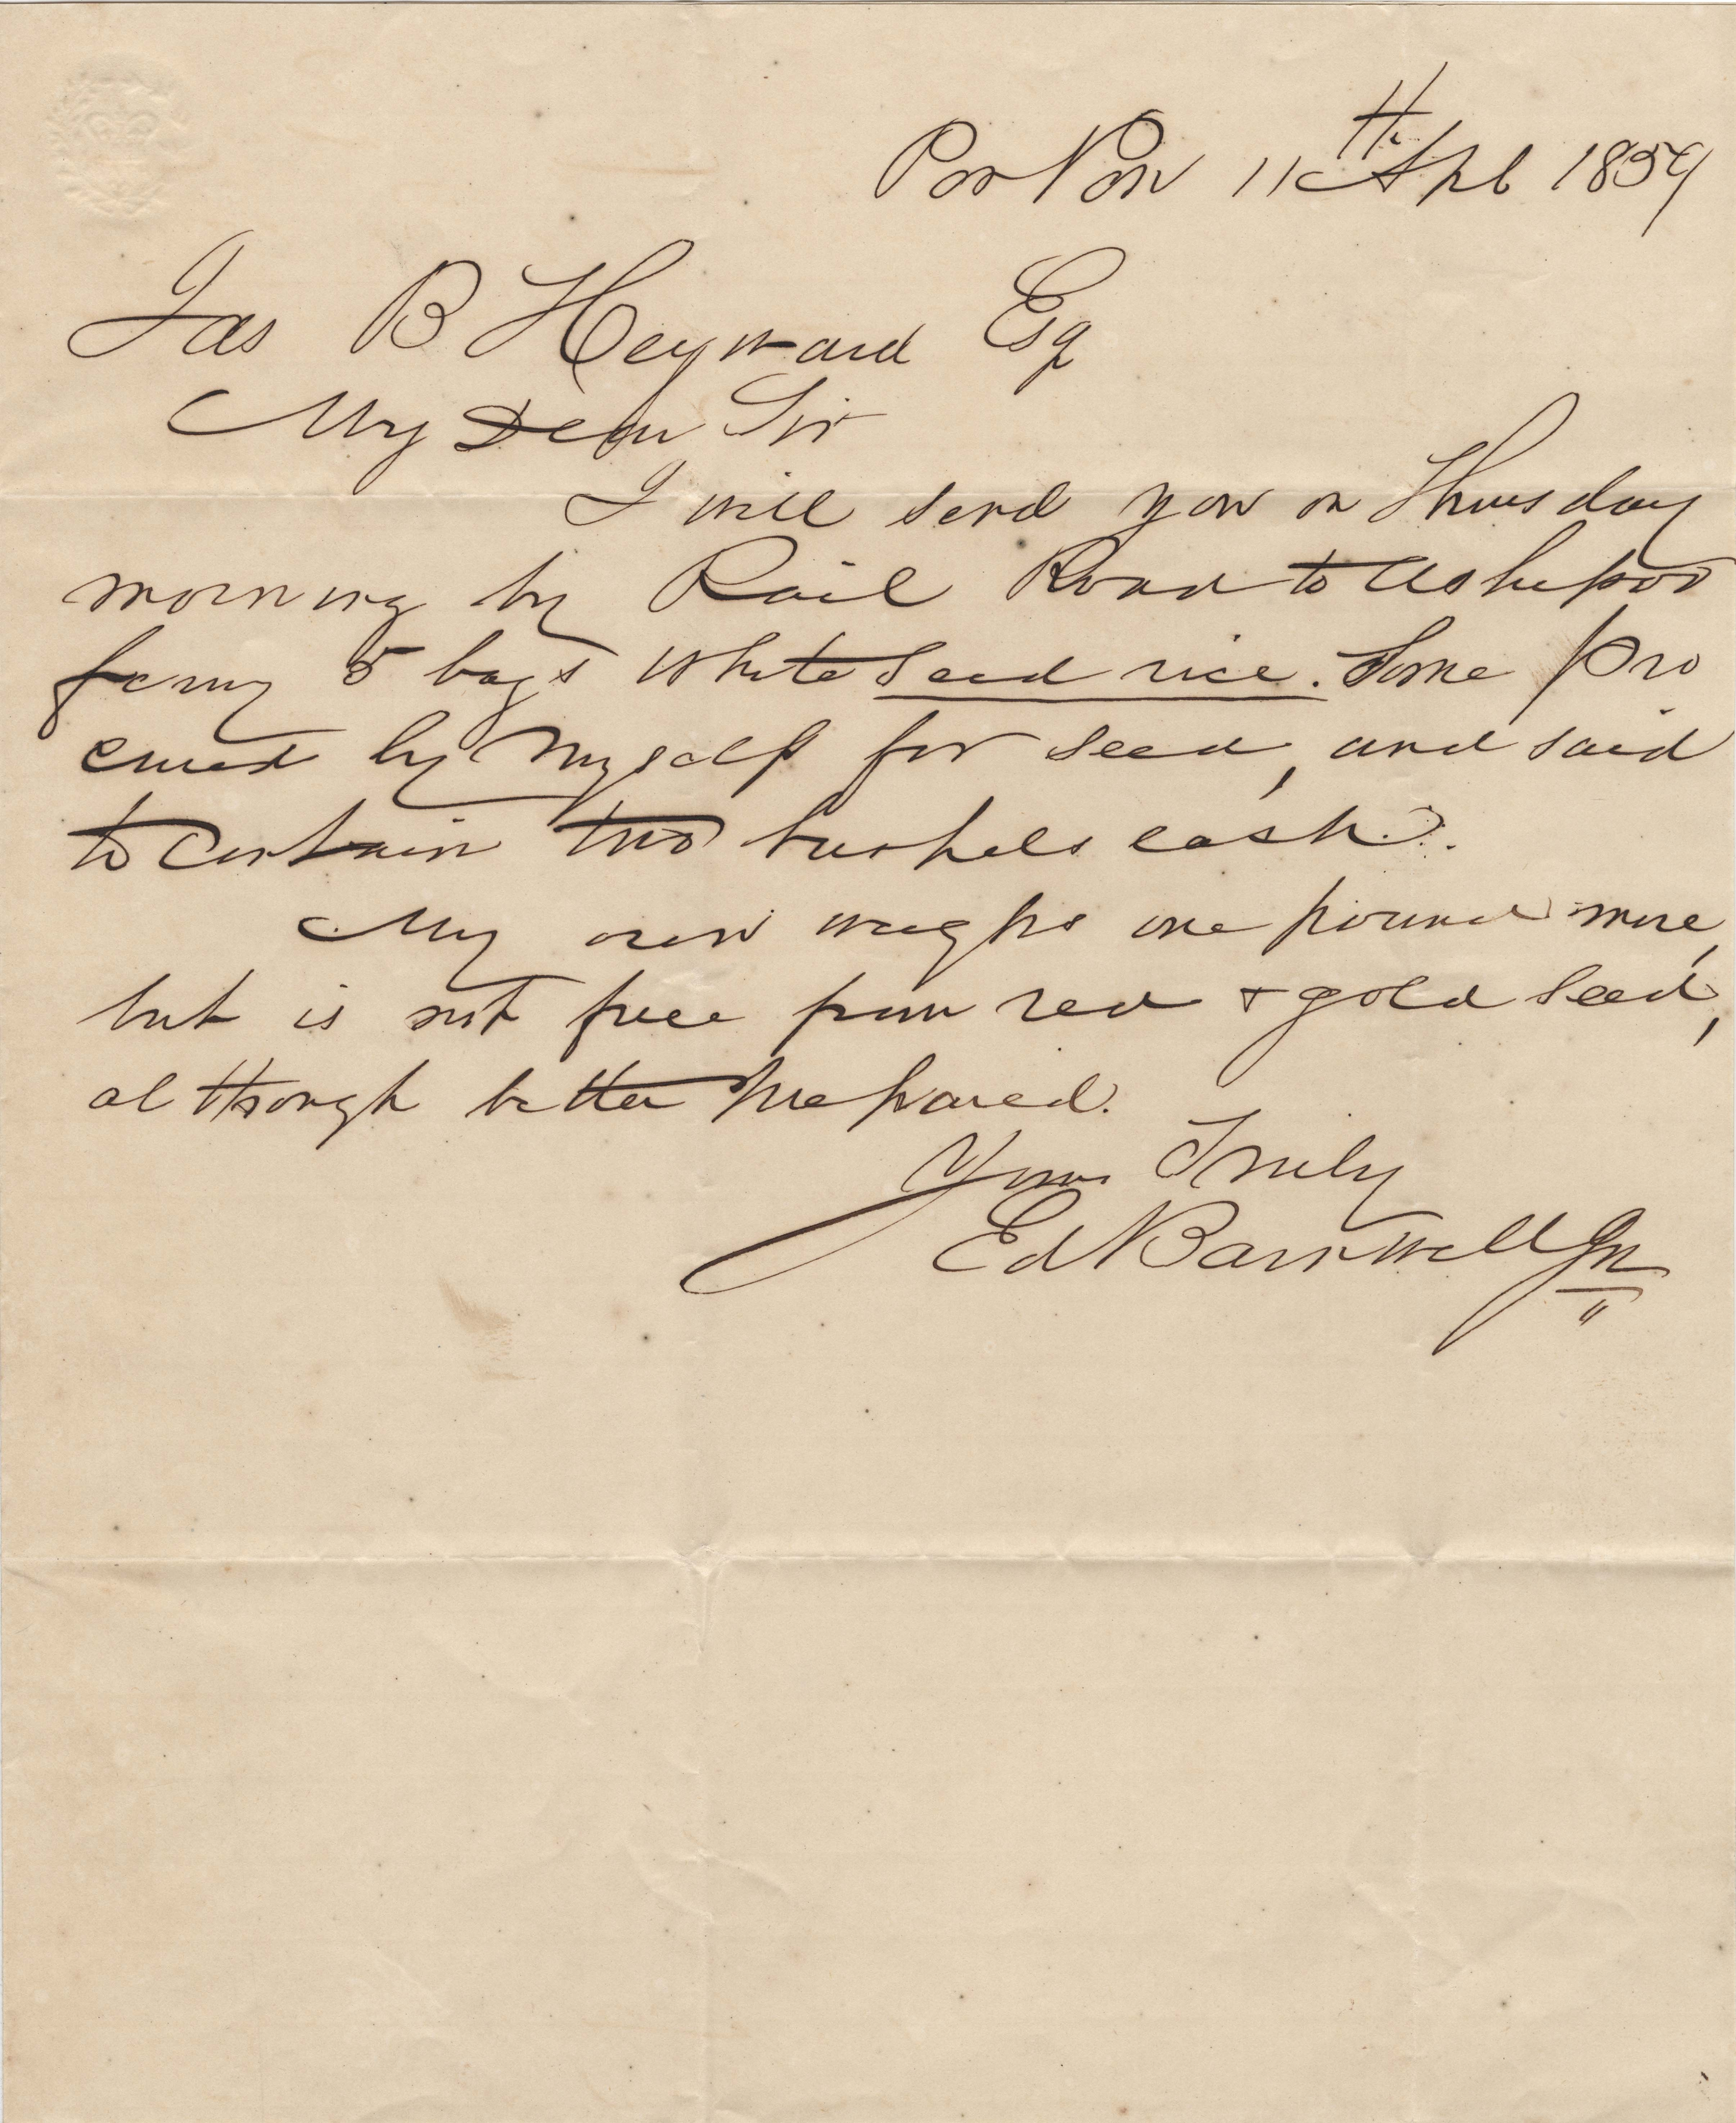 158. Edward Barnwell, Jr. to James B. Heyward -- April 11,1859